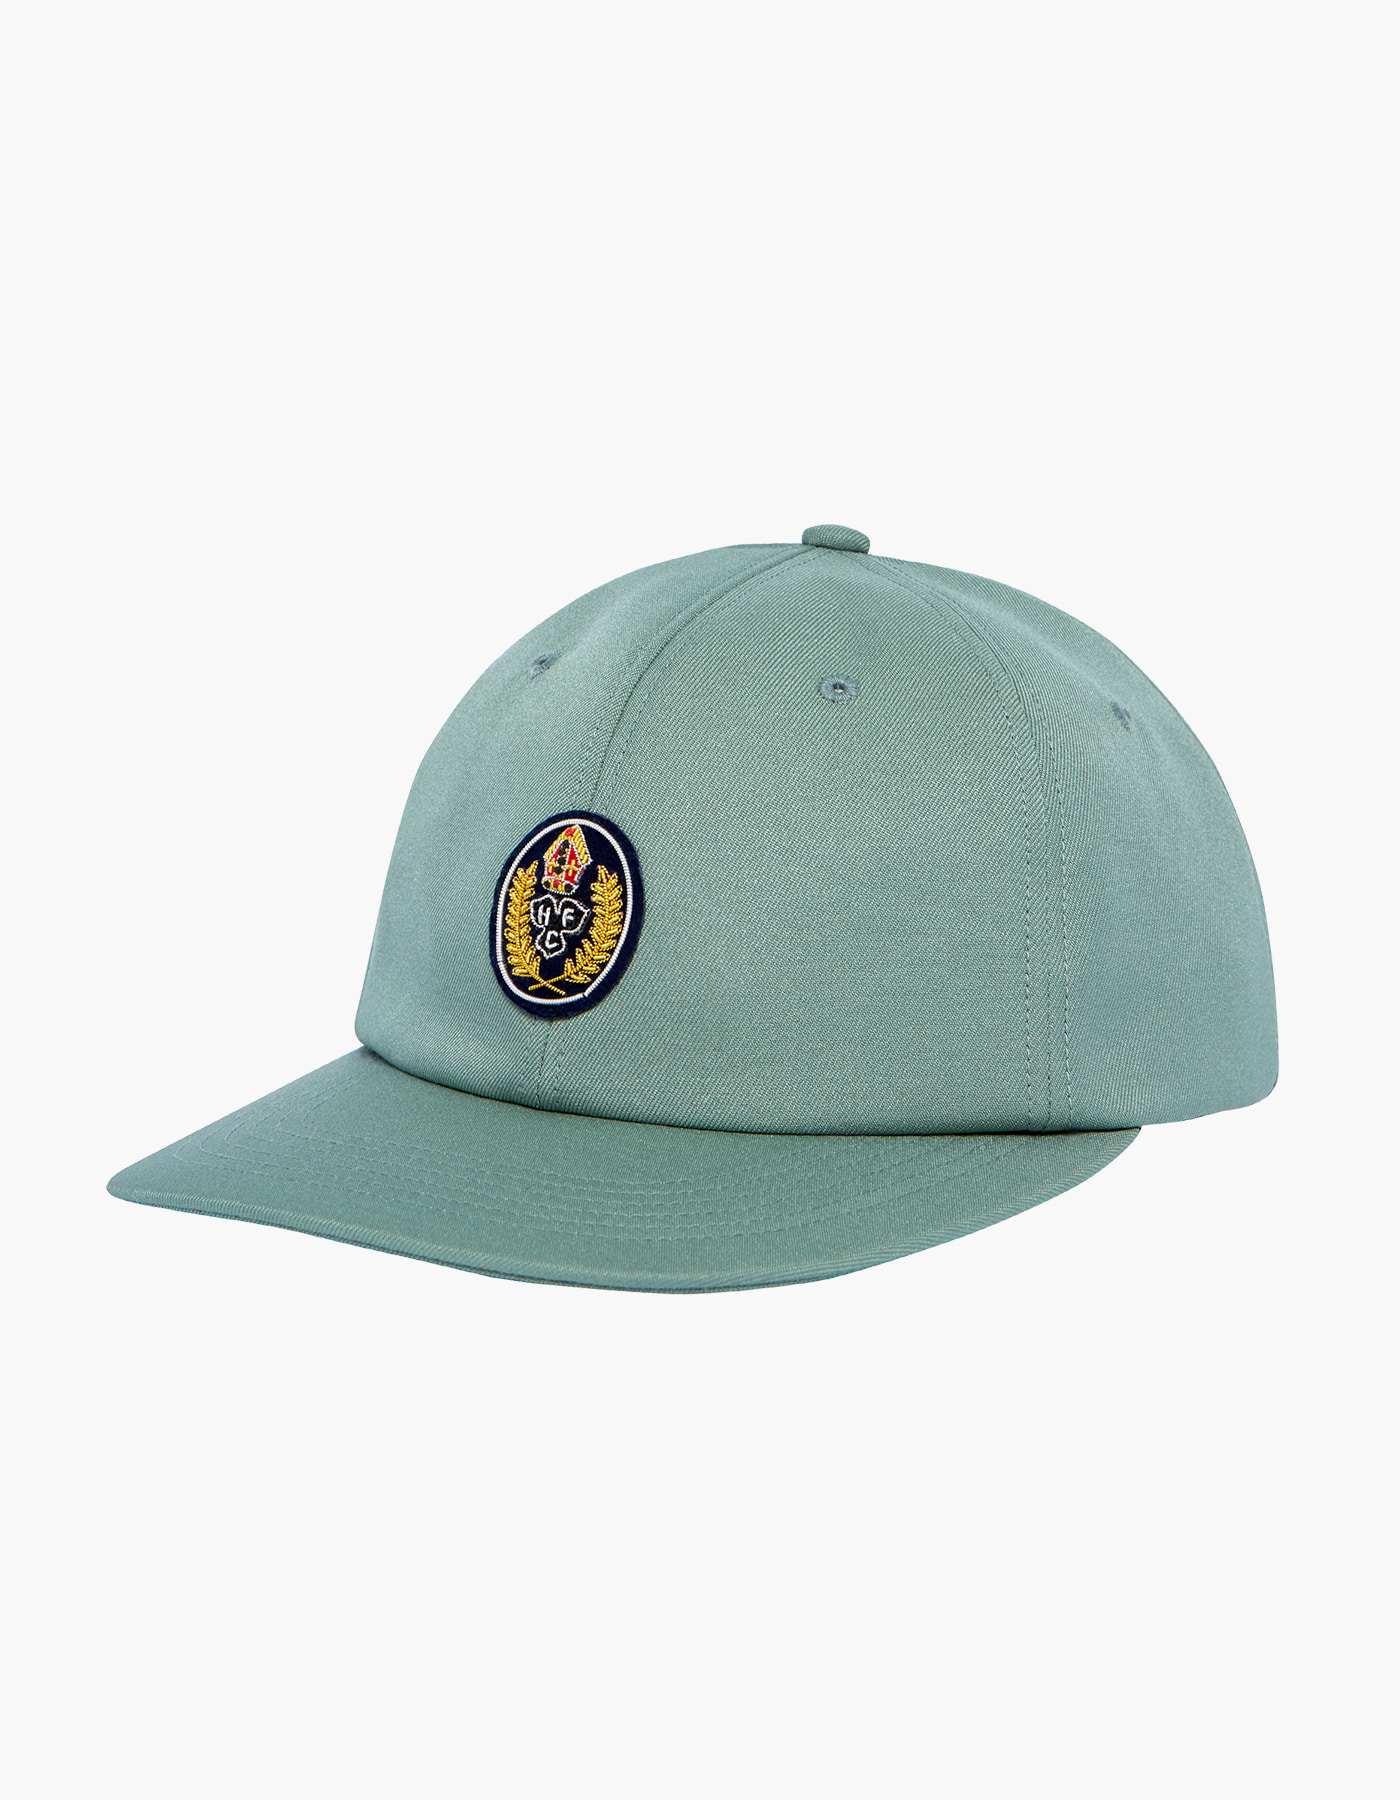 HFC CREST 6 PANELS CAP / GREEN